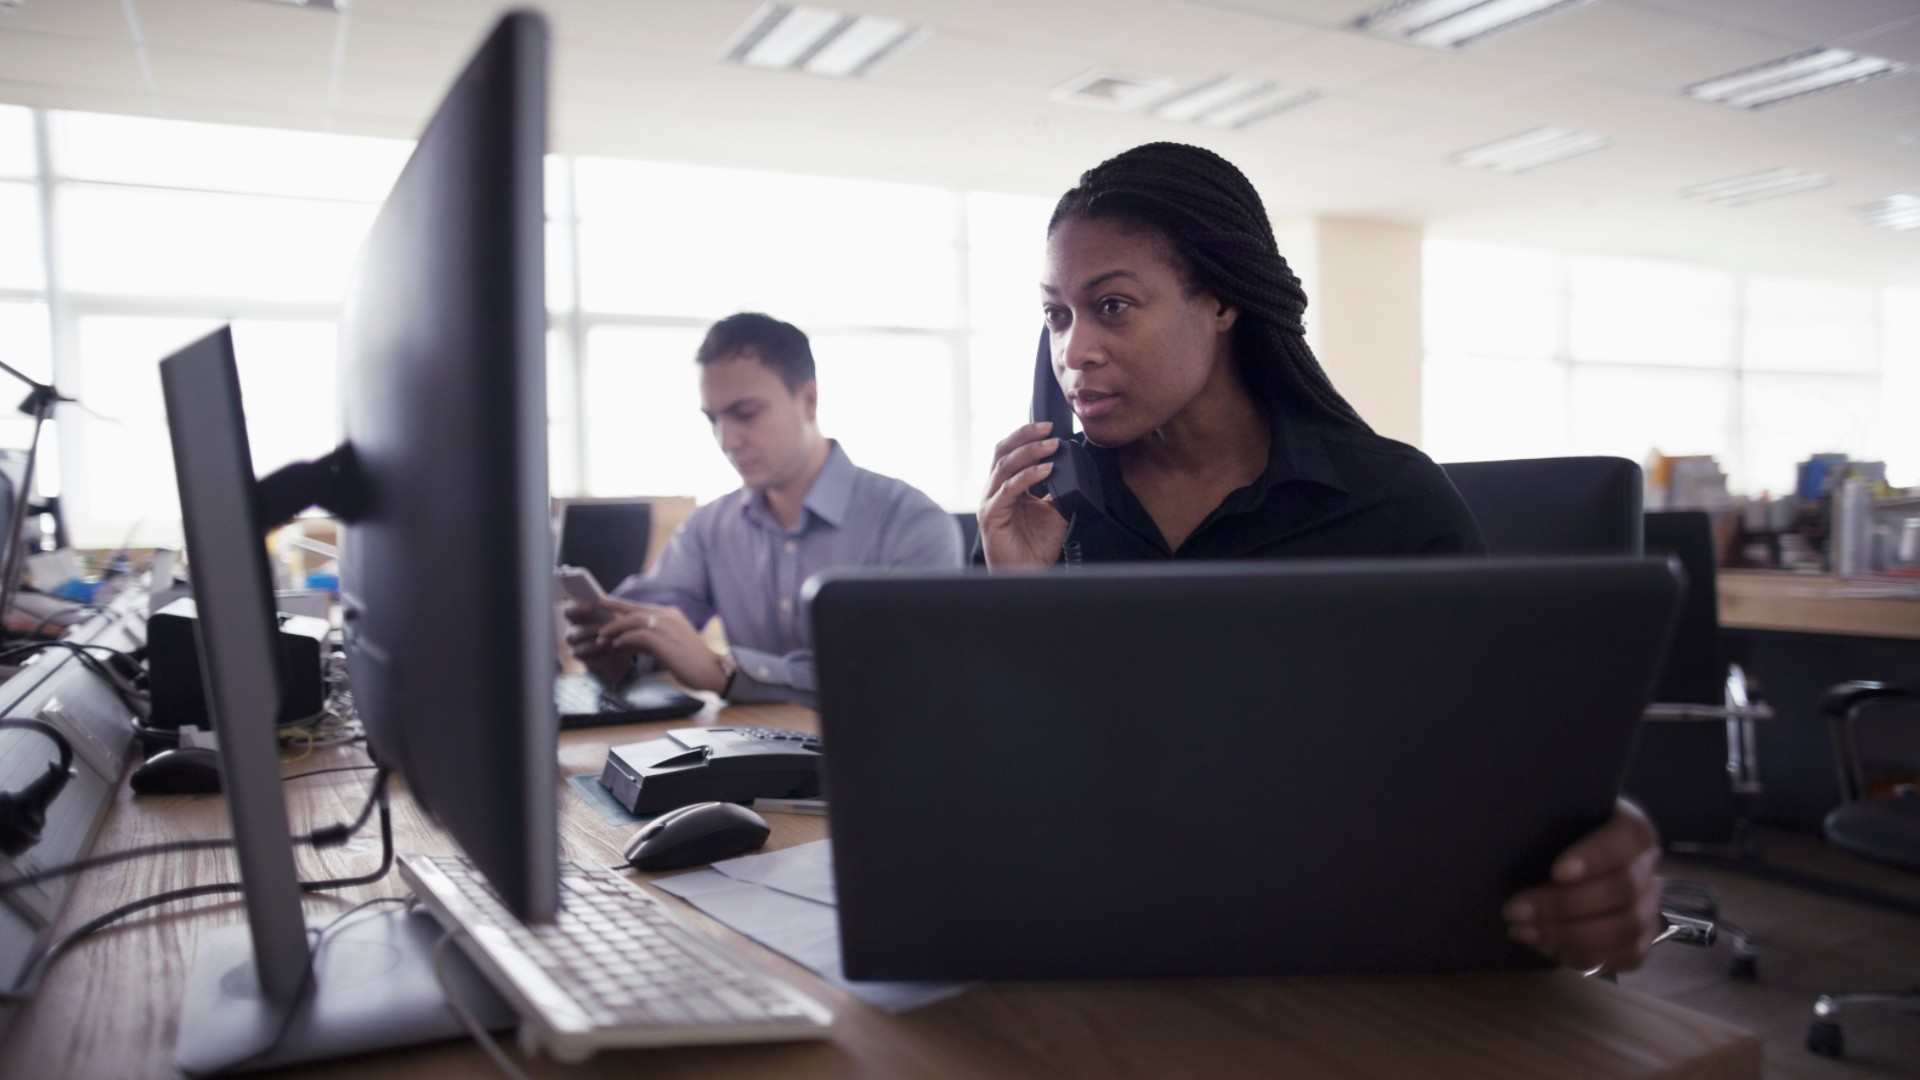 Computer Network Support Specialists